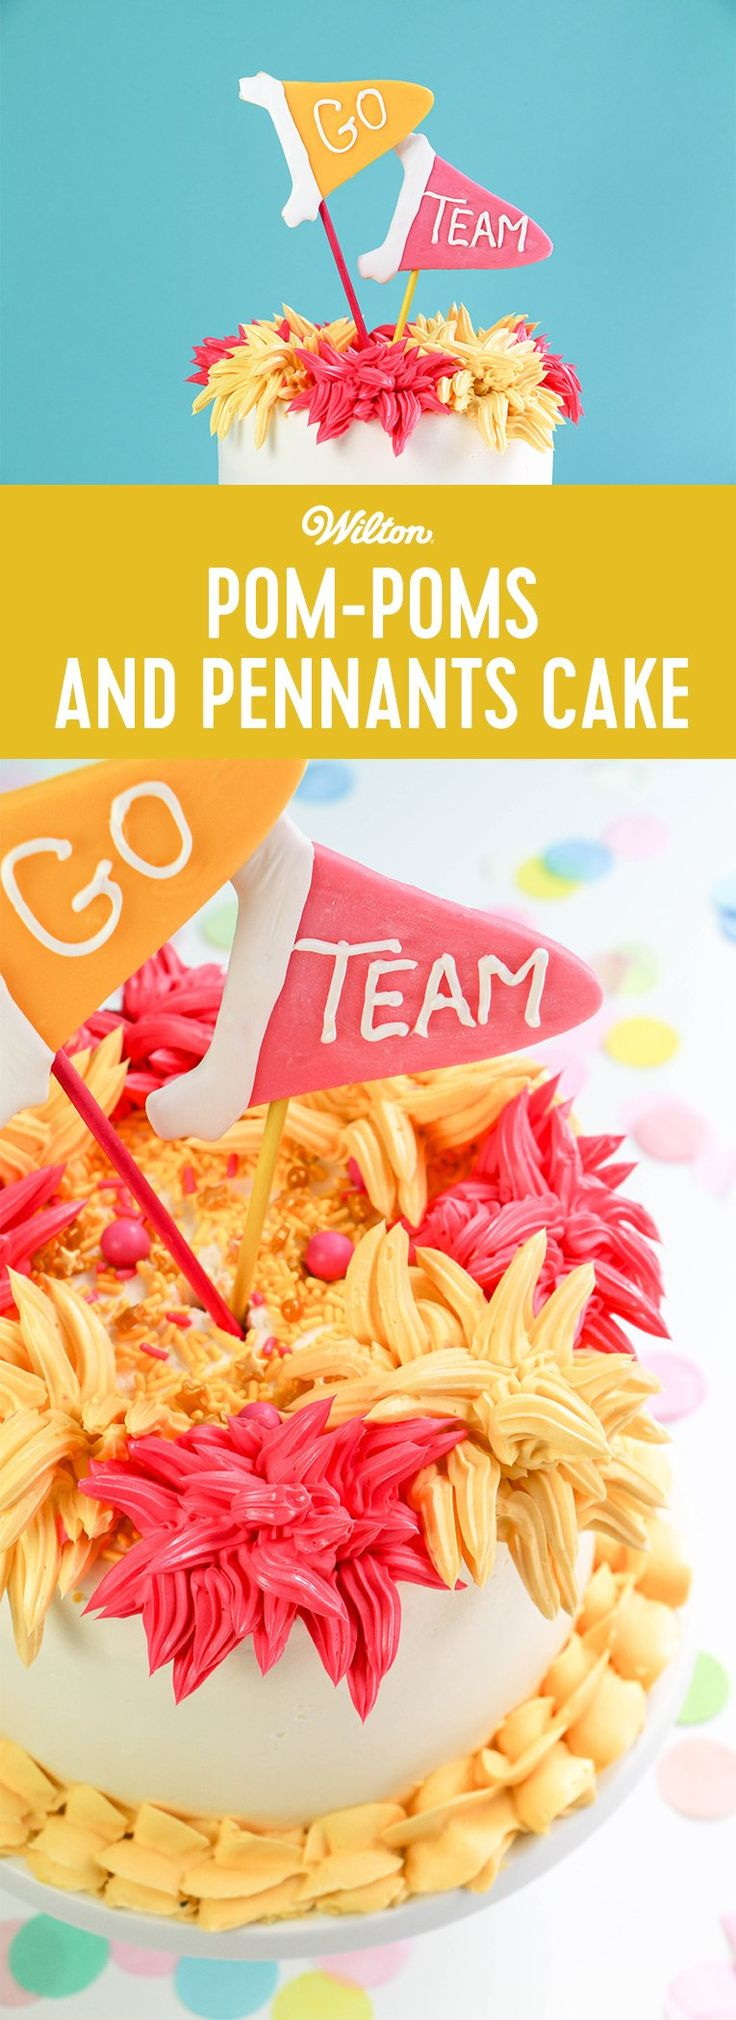 Show support for your favorite team with this fun and easy Pom-Poms and Pennants Cake by Erin Gardner, author of Erin Bakes! Customize the pom poms and pennants with your favorite team's colors.